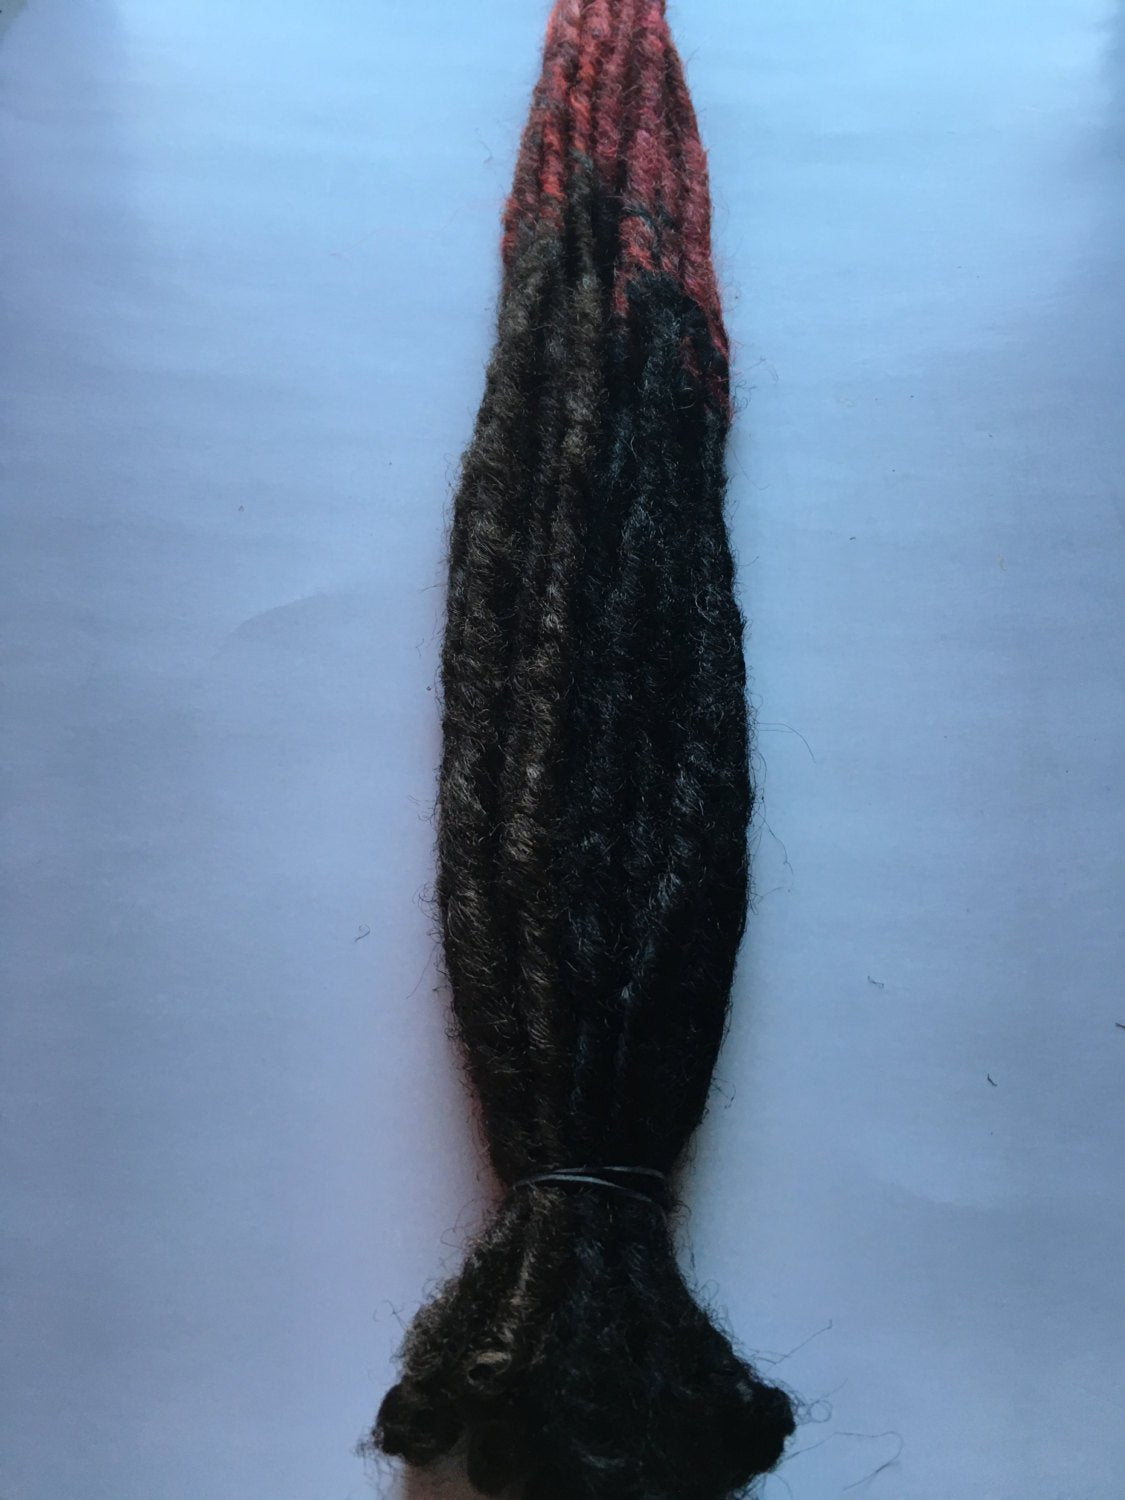 15 SE Single Ended Synthetic Dreads Black Brown Ombre Transitional Red Dreadlock Hair Extensions